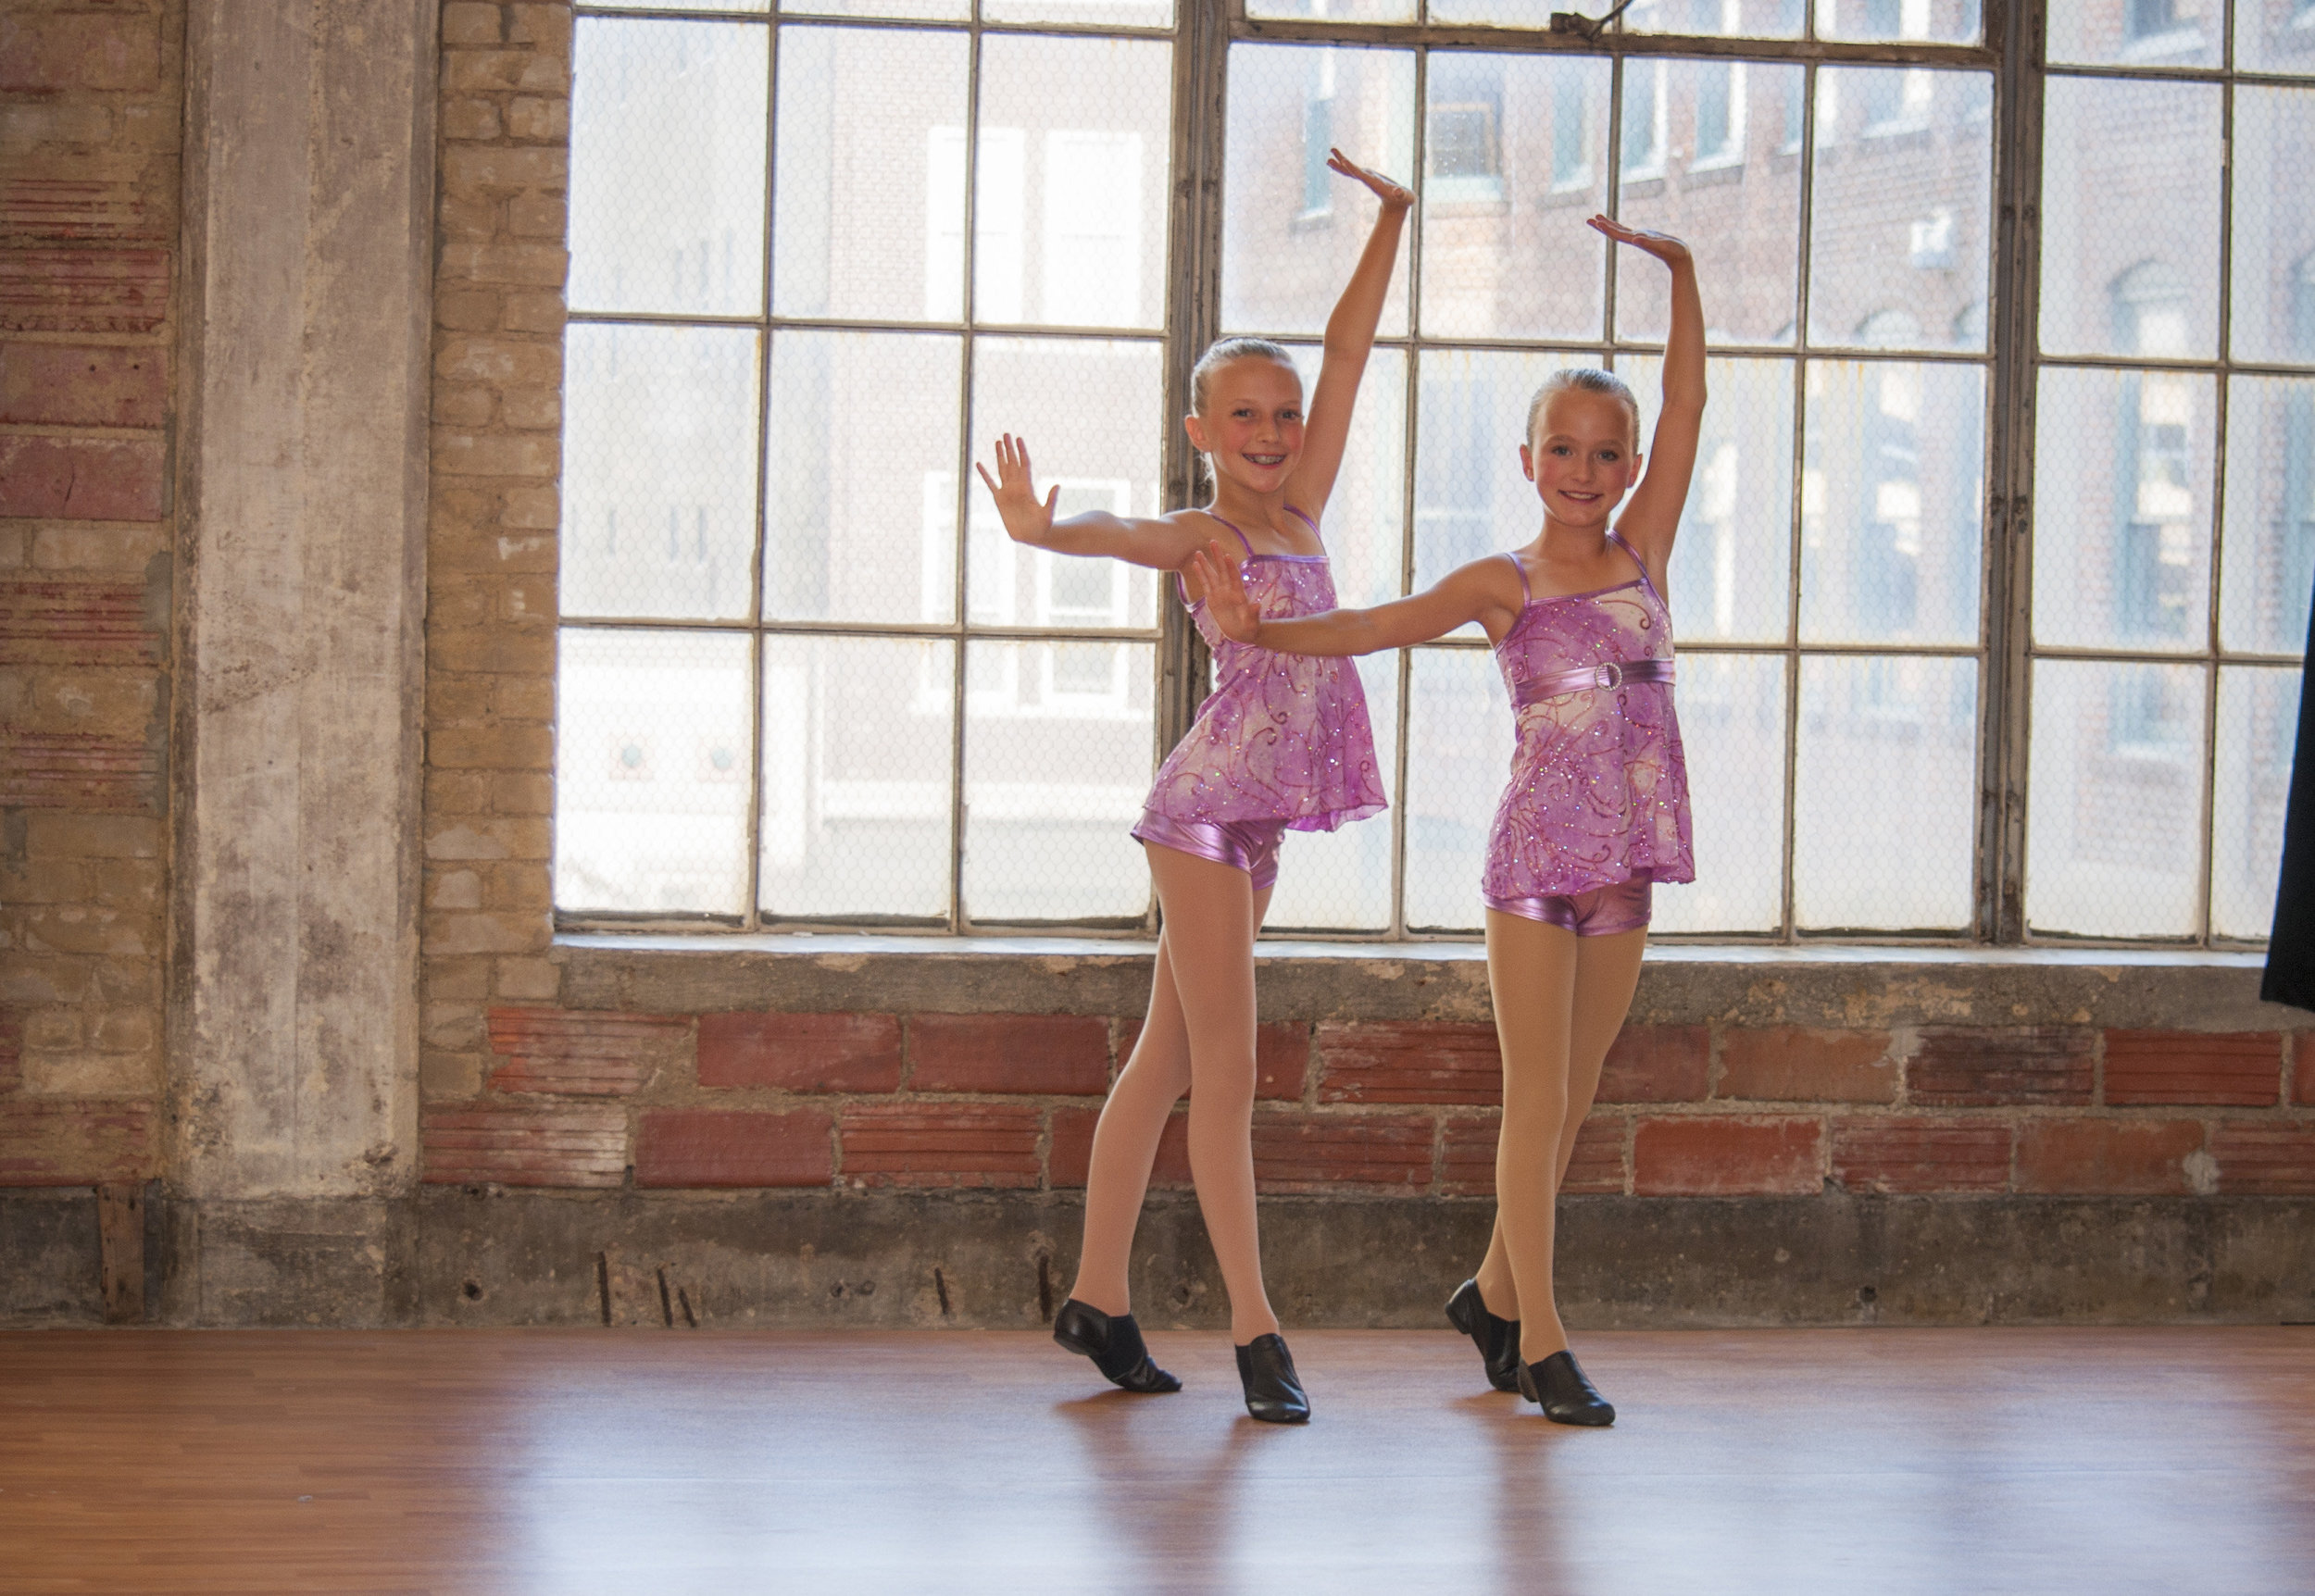 JAZZ - Learn to turn, leap and move to the rhythms of many musical styles in Jazz. Dance Gallery not only has classes for all levels of ability, Dance Gallery has two award winning Jazz teams that perform and compete throughout the school year. The technique used for this class is based from jazz great, Gus Giordano of Chicago, as well as other techniques. This training will develop strong, yet flexible dancers. The styles in a jazz class may include hip-hop to lyrical. Students enrolled in this class will find it easier to accomplish the combinations if enrolled in the ballet program.